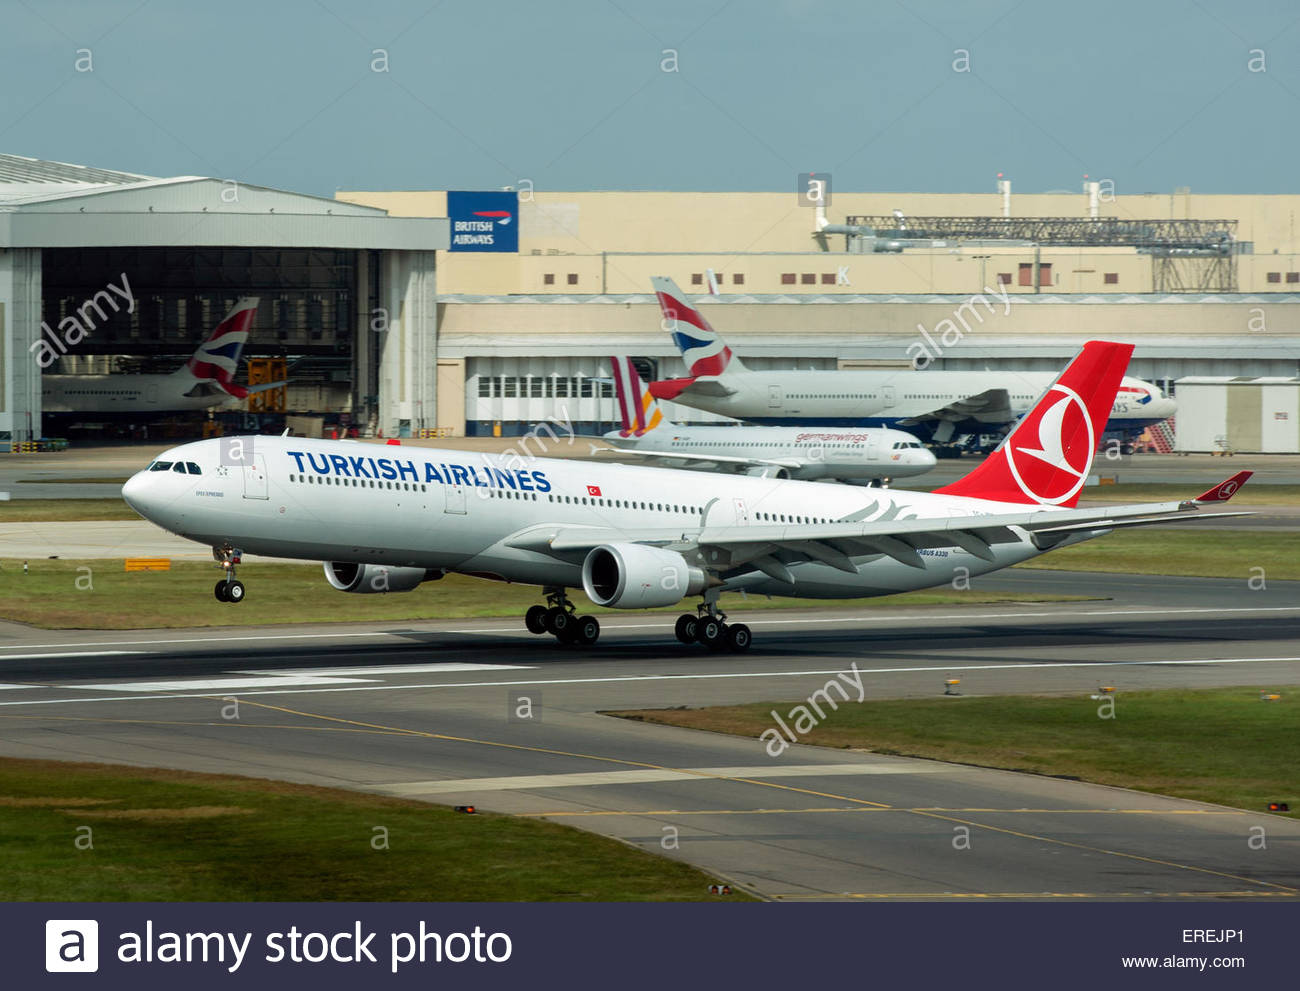 London UK Turkish Airlines Airbus A330 aircraft landing at London Heathrow Airport (LHR) - Stock Image